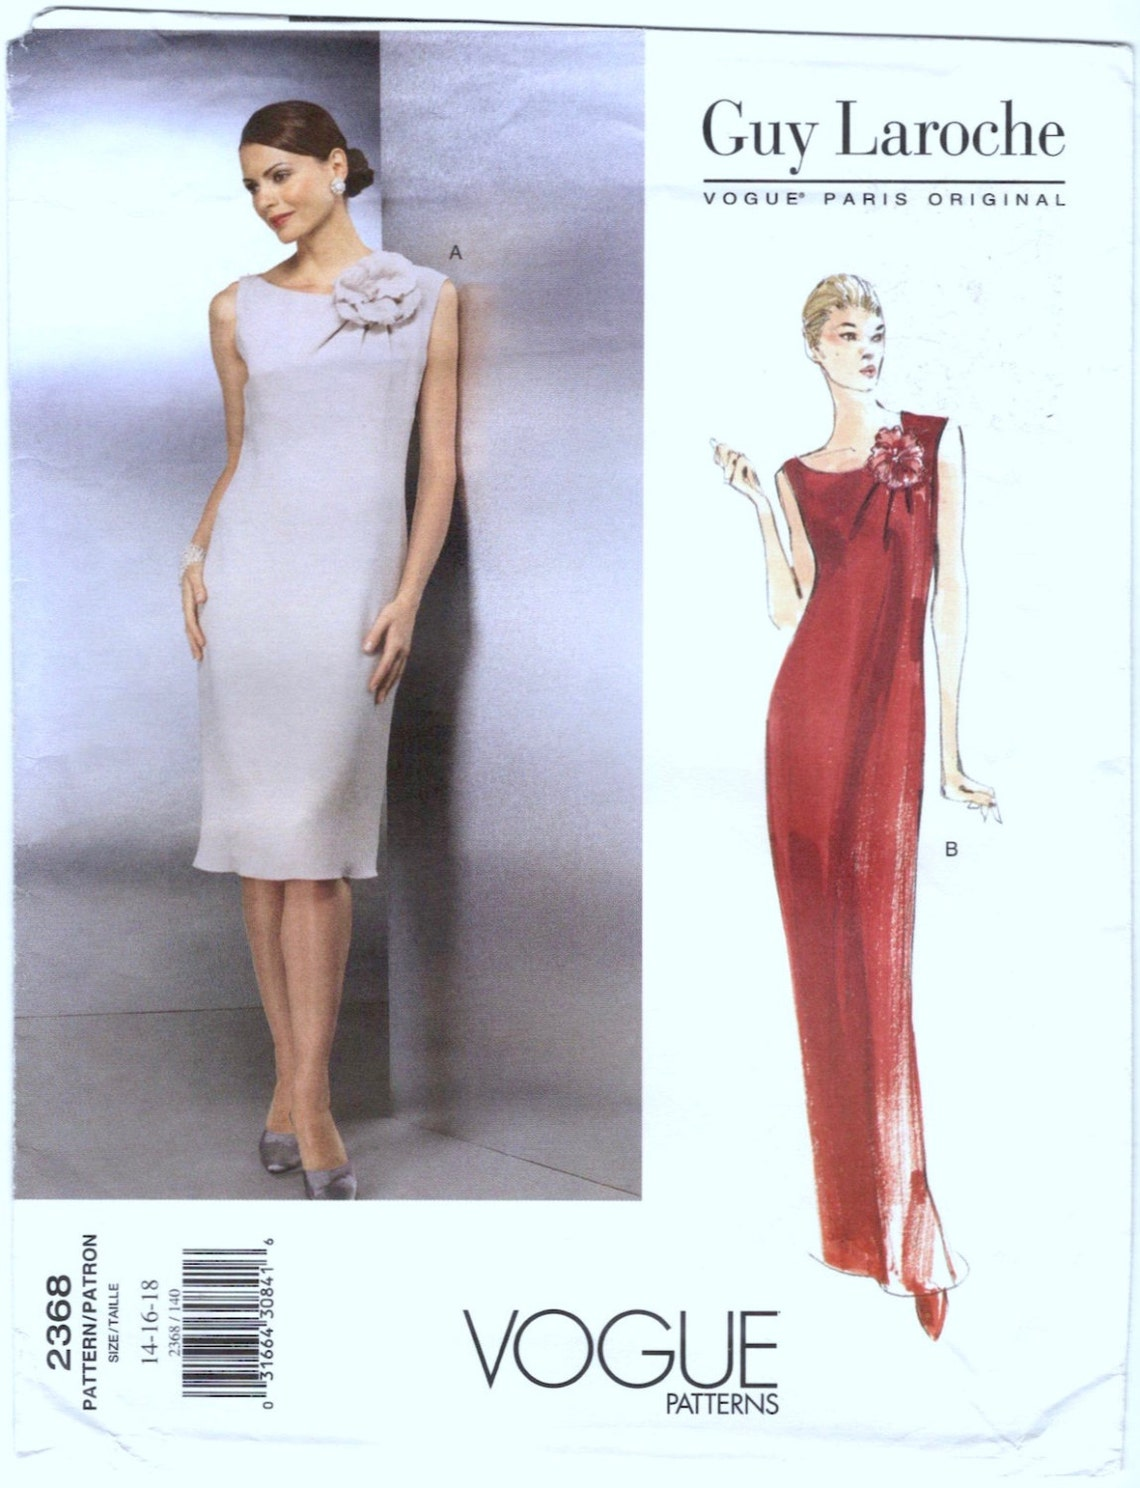 1990s Guy Laroche cocktail or evening dress pattern by Alber Elbaz? - Vogue 2368